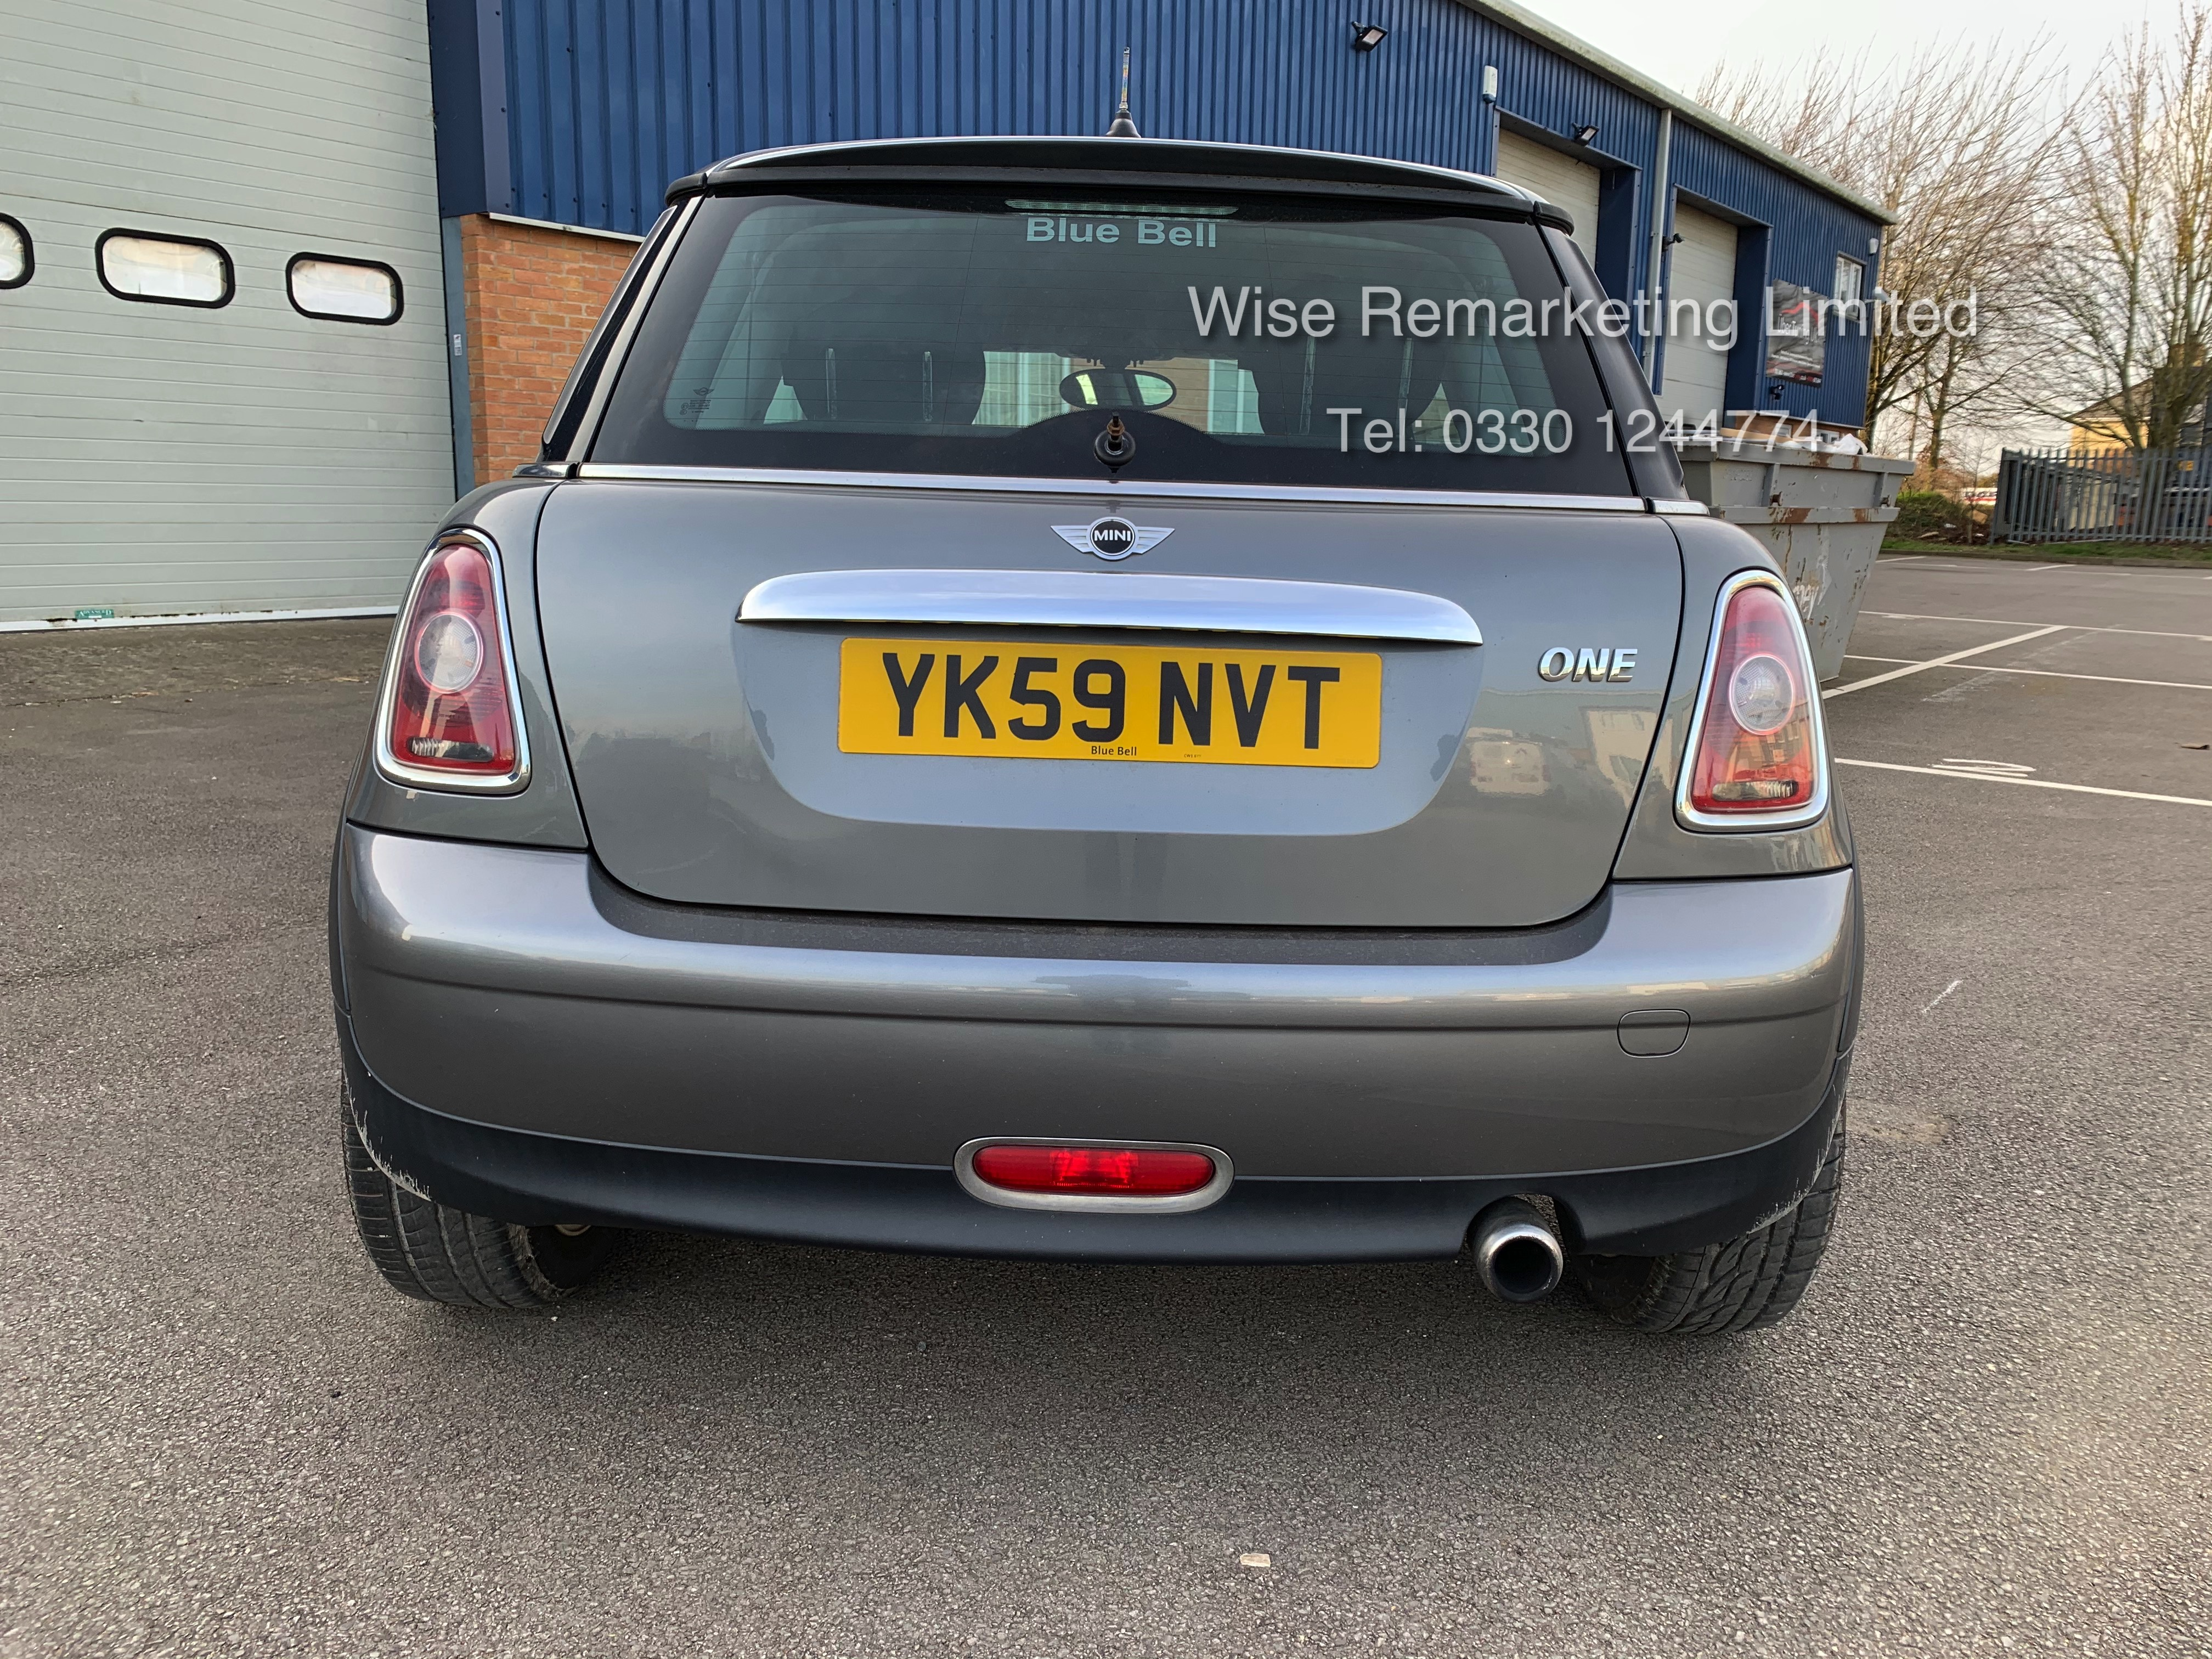 (RESERVE MET) Mini One Graphite 1.4 Petrol - 2010 Model - Service History - 6 Speed - Air Con - - Image 5 of 19